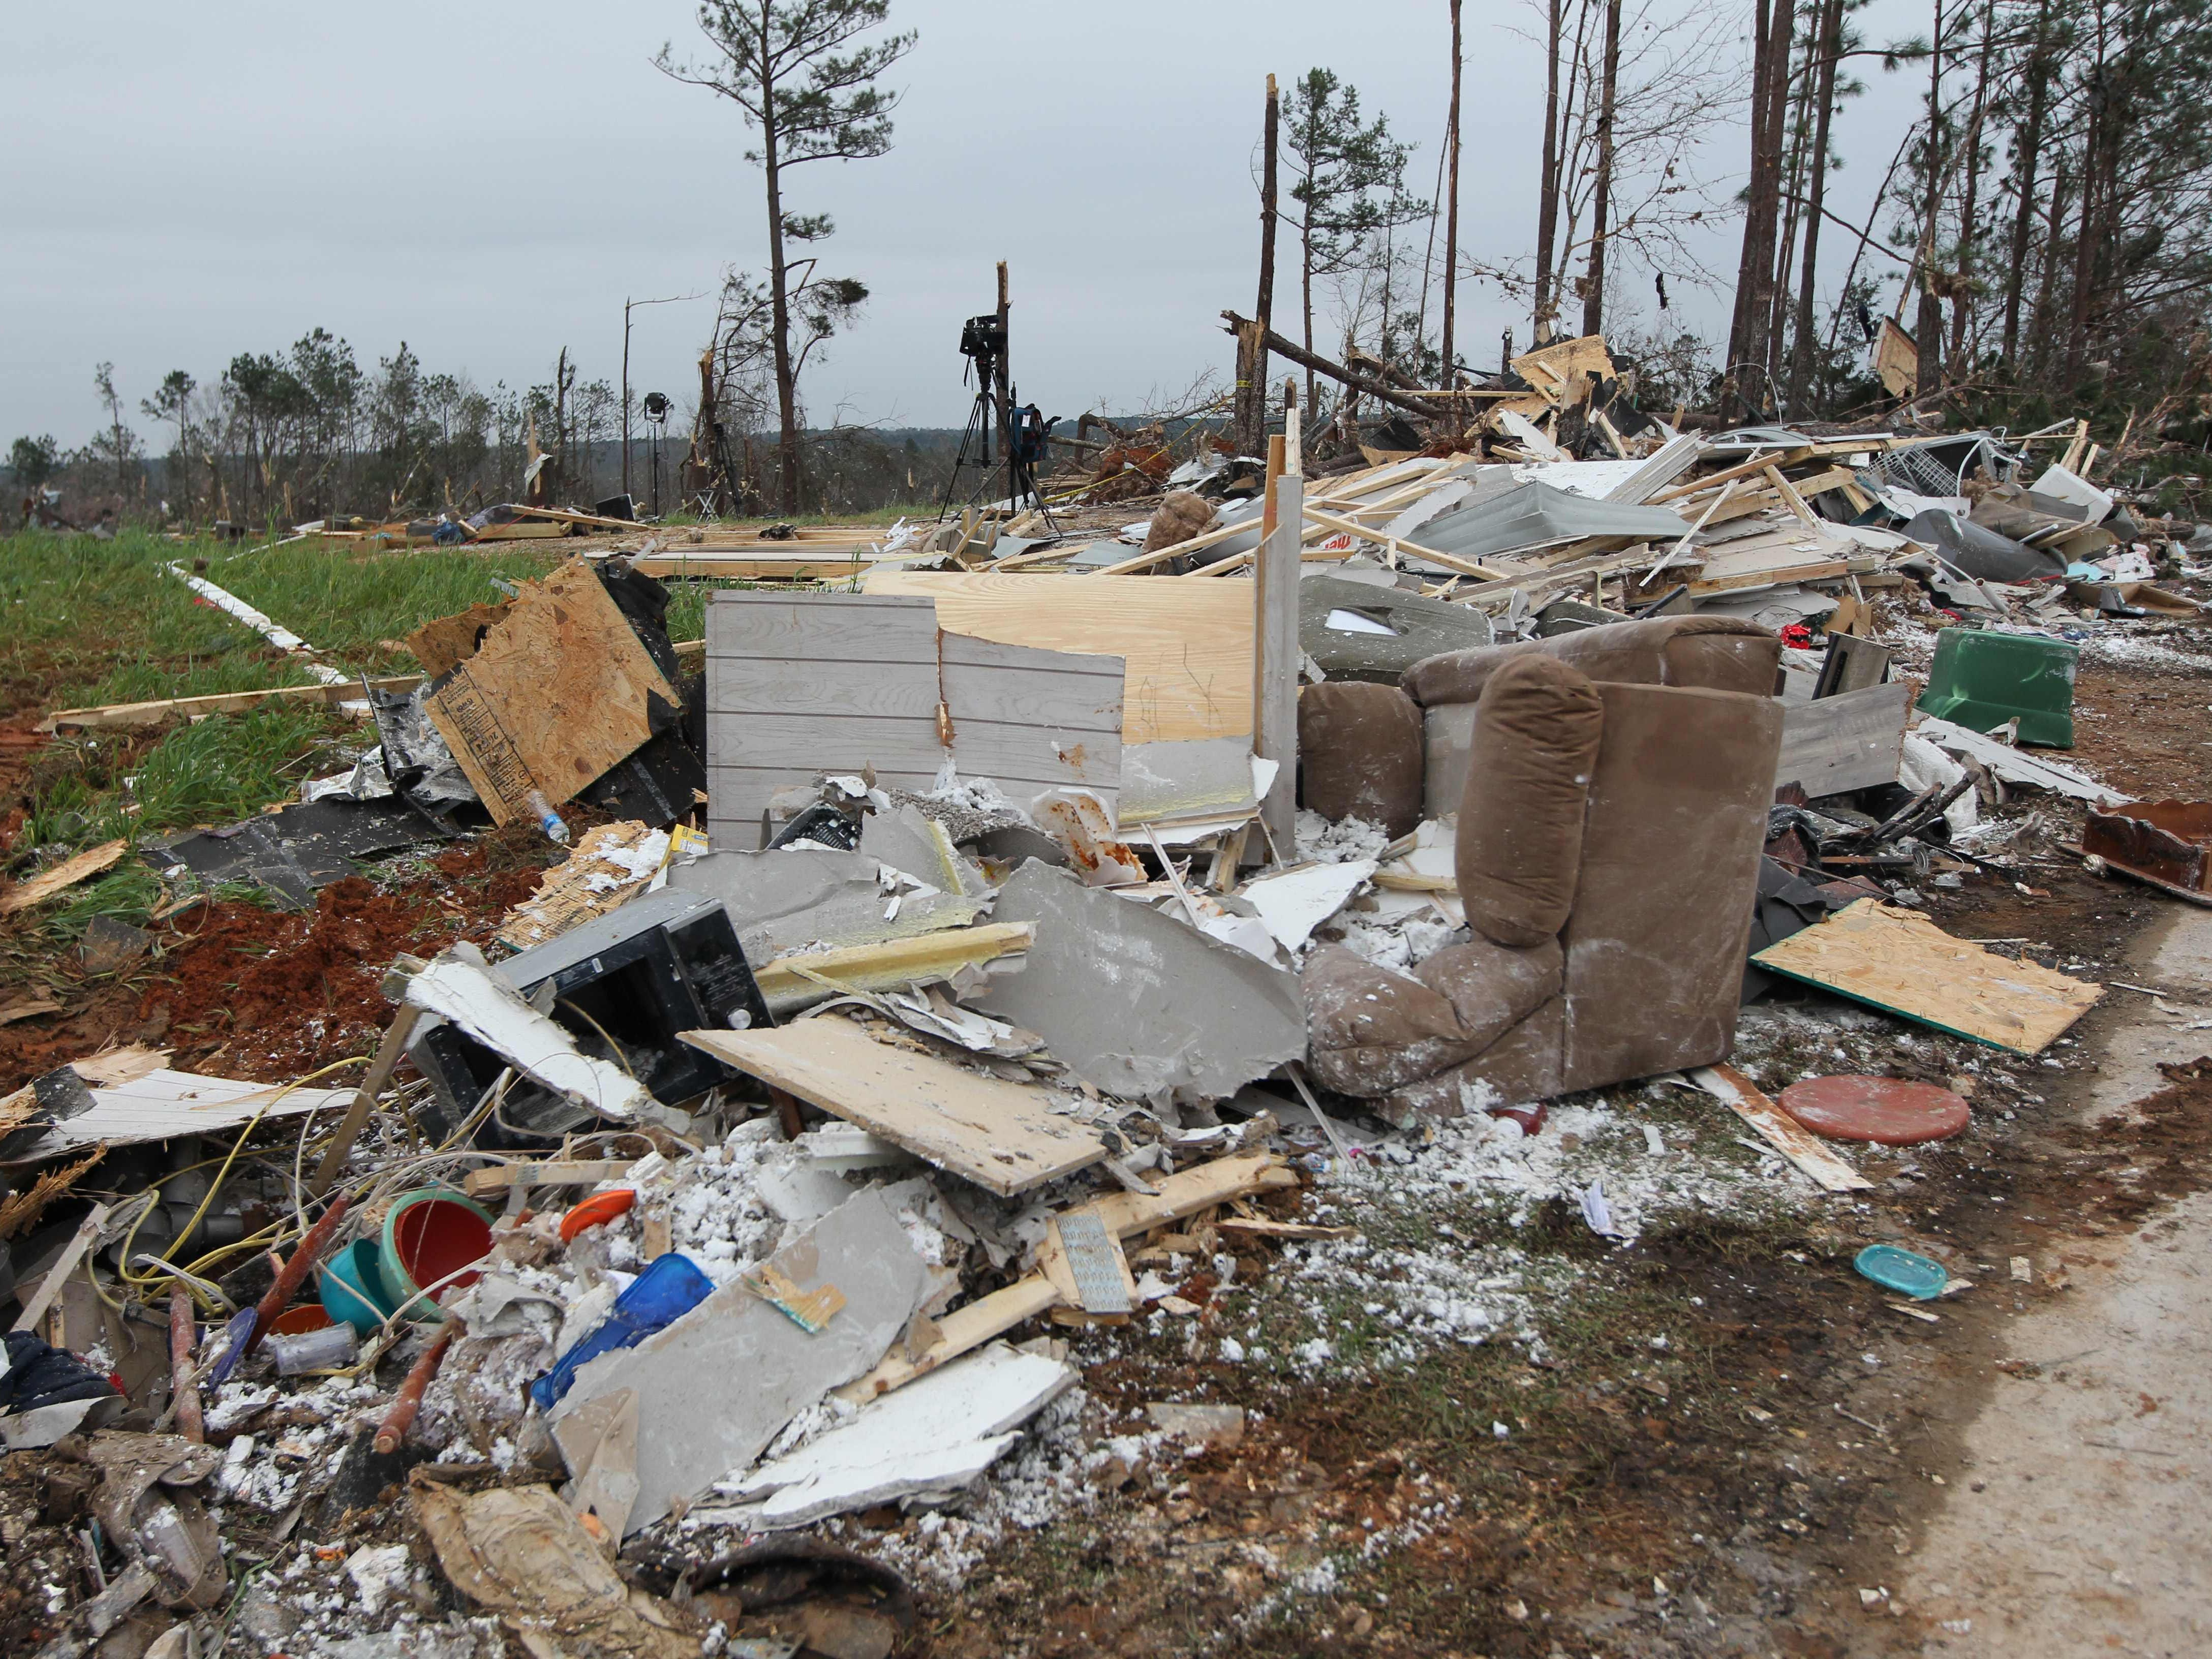 """Damage is seen from a tornado which killed at least 23 people in Beauregard, Alabama on March 4, 2019. - Rescuers in Alabama were set to resume search operations Monday after at least two tornadoes killed 23 people, uprooted trees and caused """"catastrophic"""" damage to buildings and roads in the southern US state.""""The devastation is incredible,"""" Lee County Sheriff Jay Jones told the local CBS affiliate late Sunday.""""I cannot recall at least in the last 50 years... a situation where we have had this loss of life that we experienced today."""" (Photo by Tami Chappell / AFP)TAMI CHAPPELL/AFP/Getty Images ORIG FILE ID: AFP_1E73RE"""